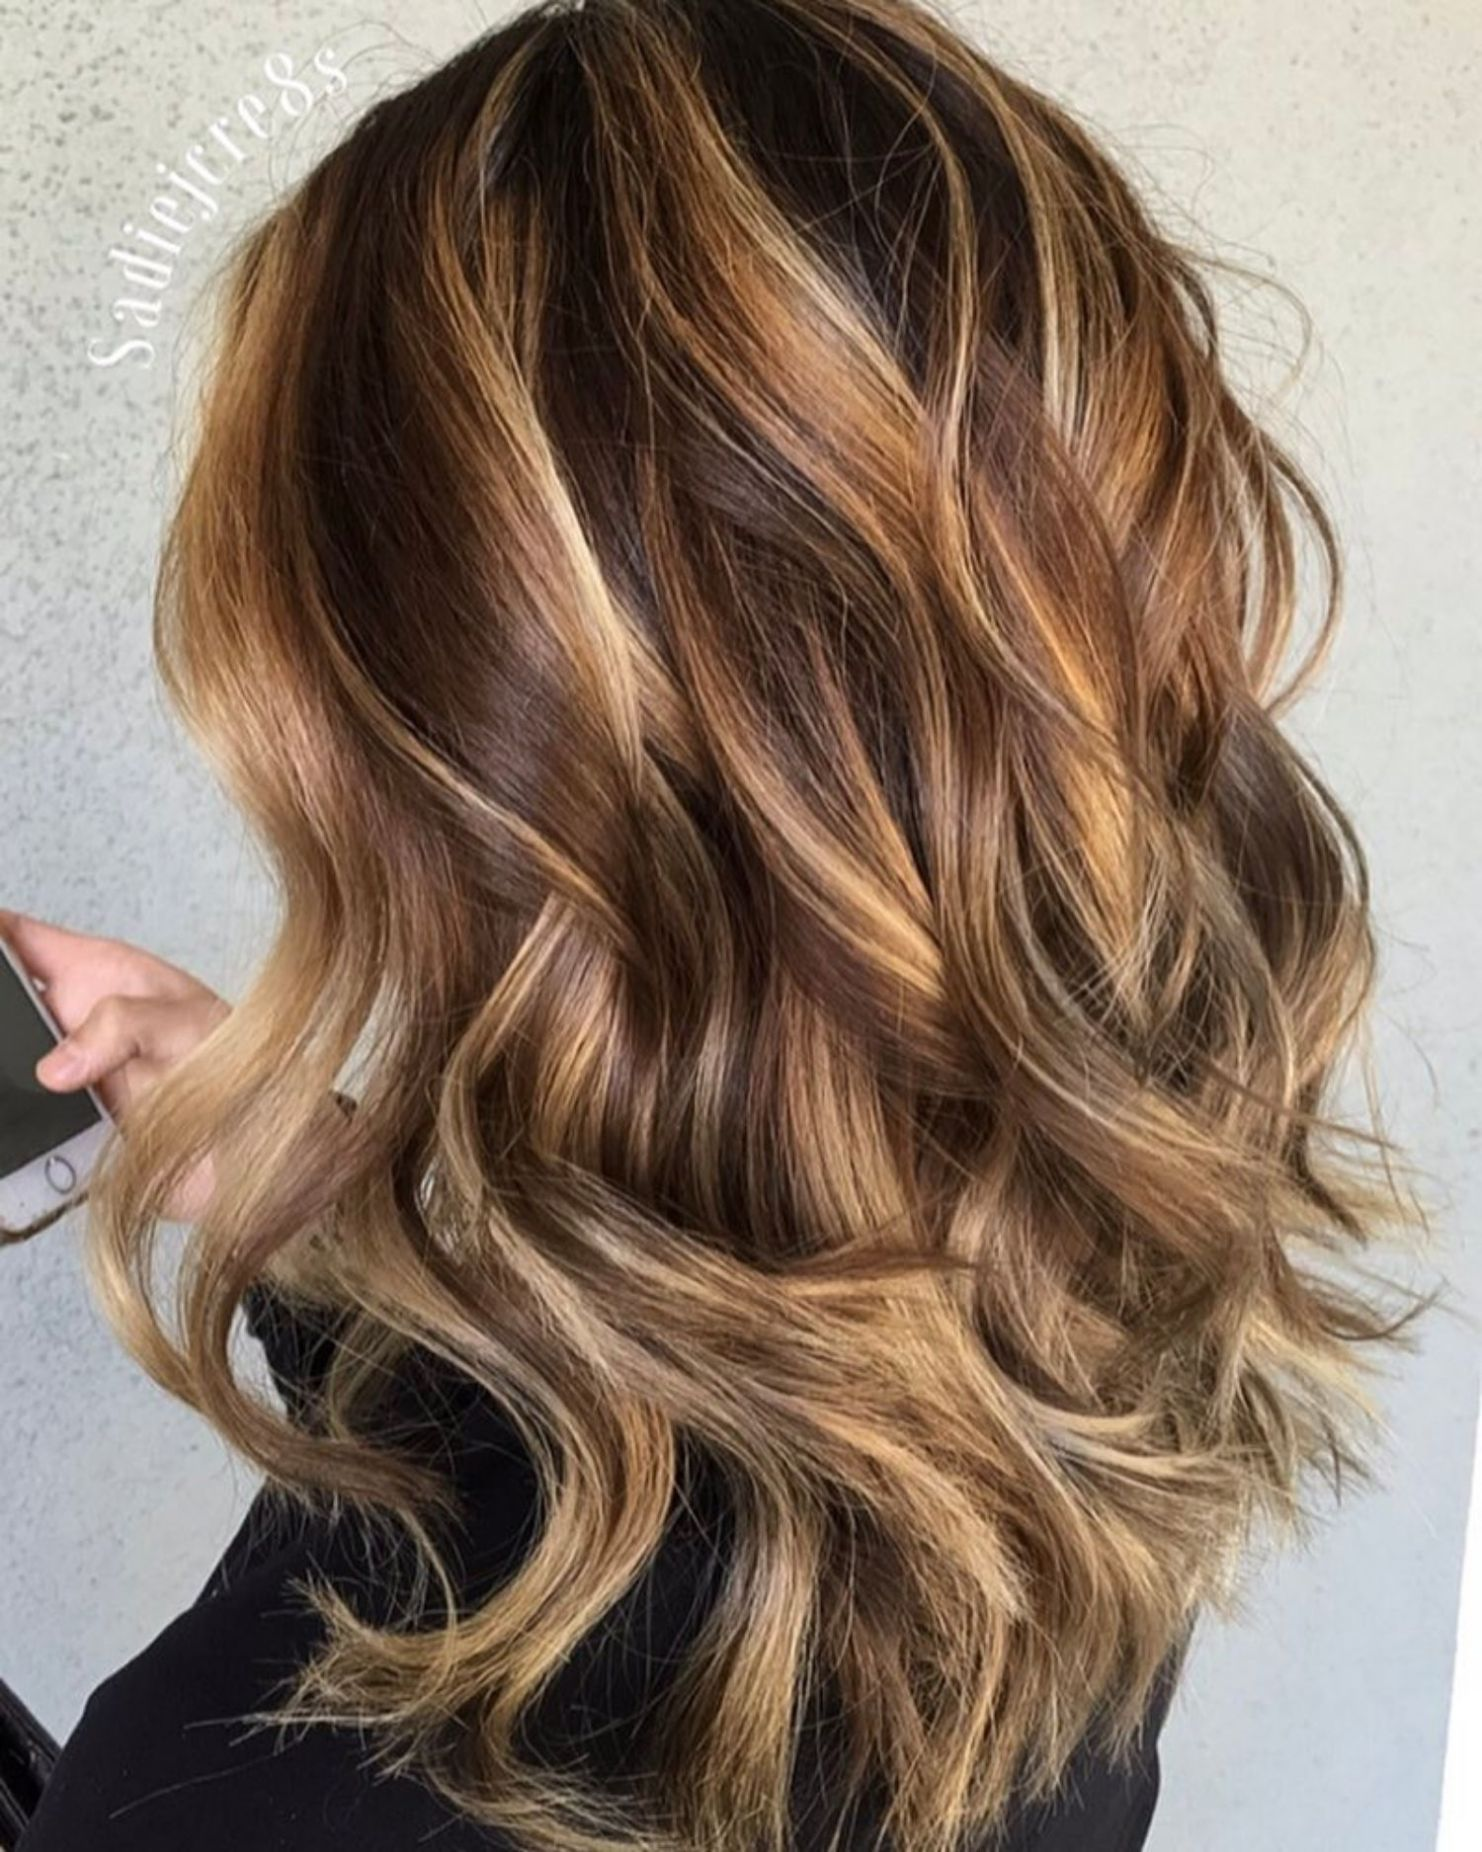 50 Ideas For Light Brown Hair With Highlights And Lowlights Hair